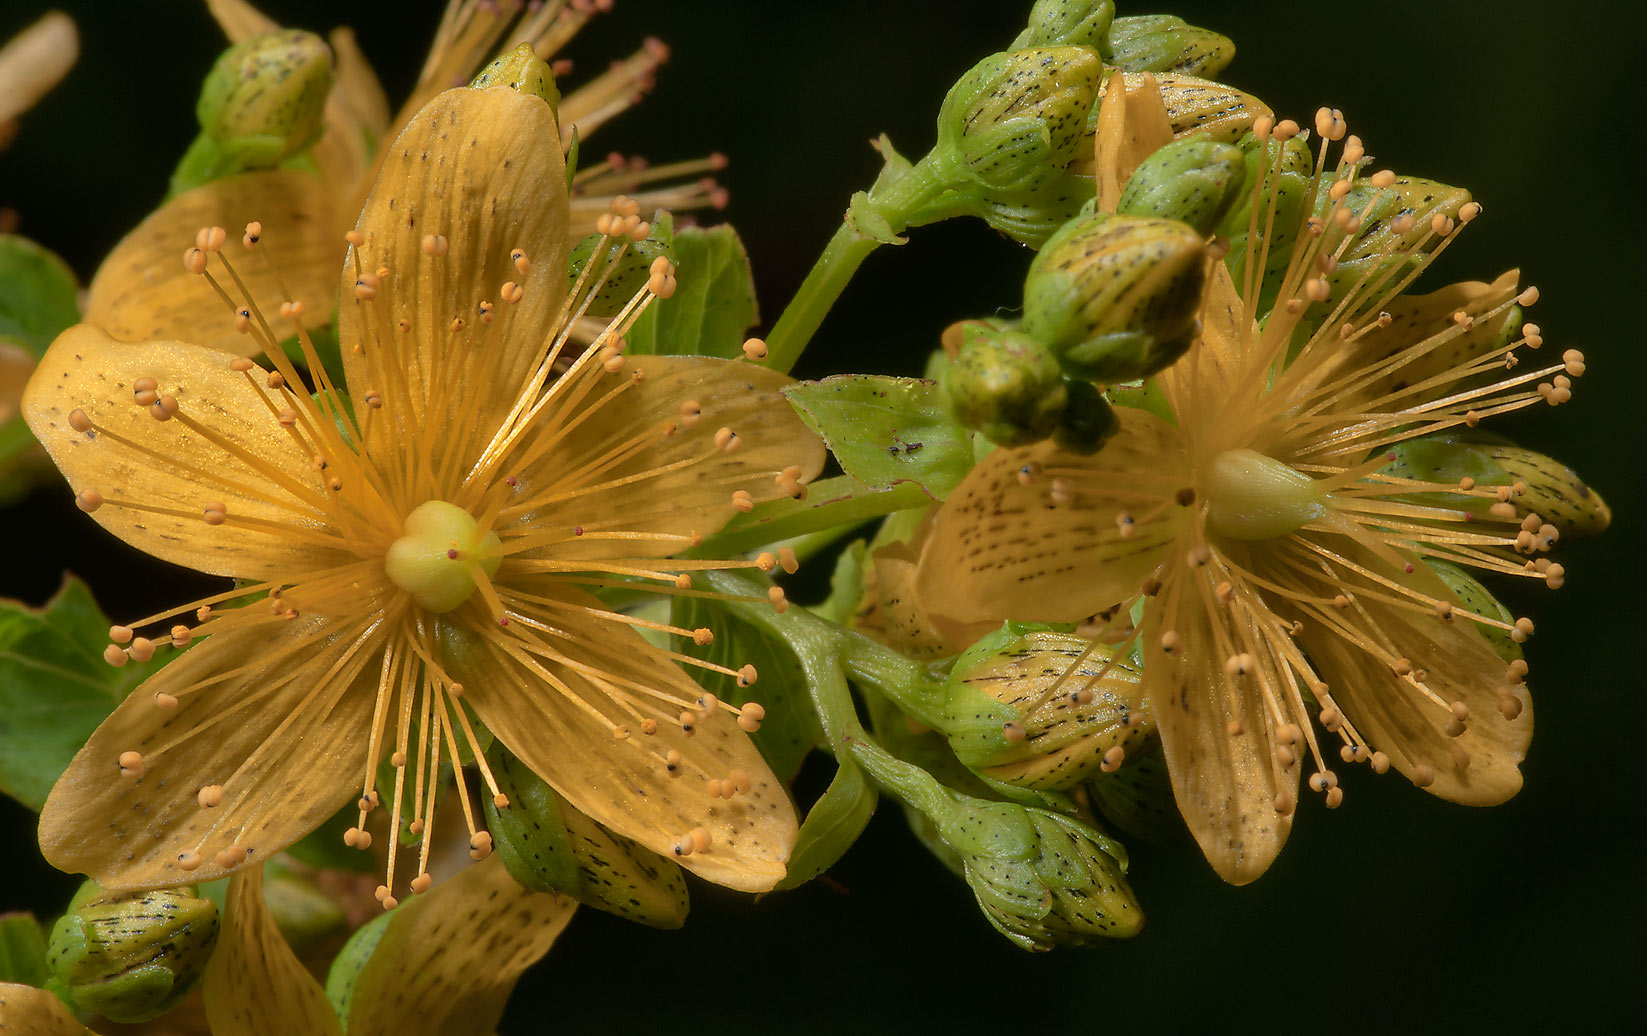 Flowers of St. John's Wort (Hypericum perforatum...from Deviatkino. St.Petersburg, Russia